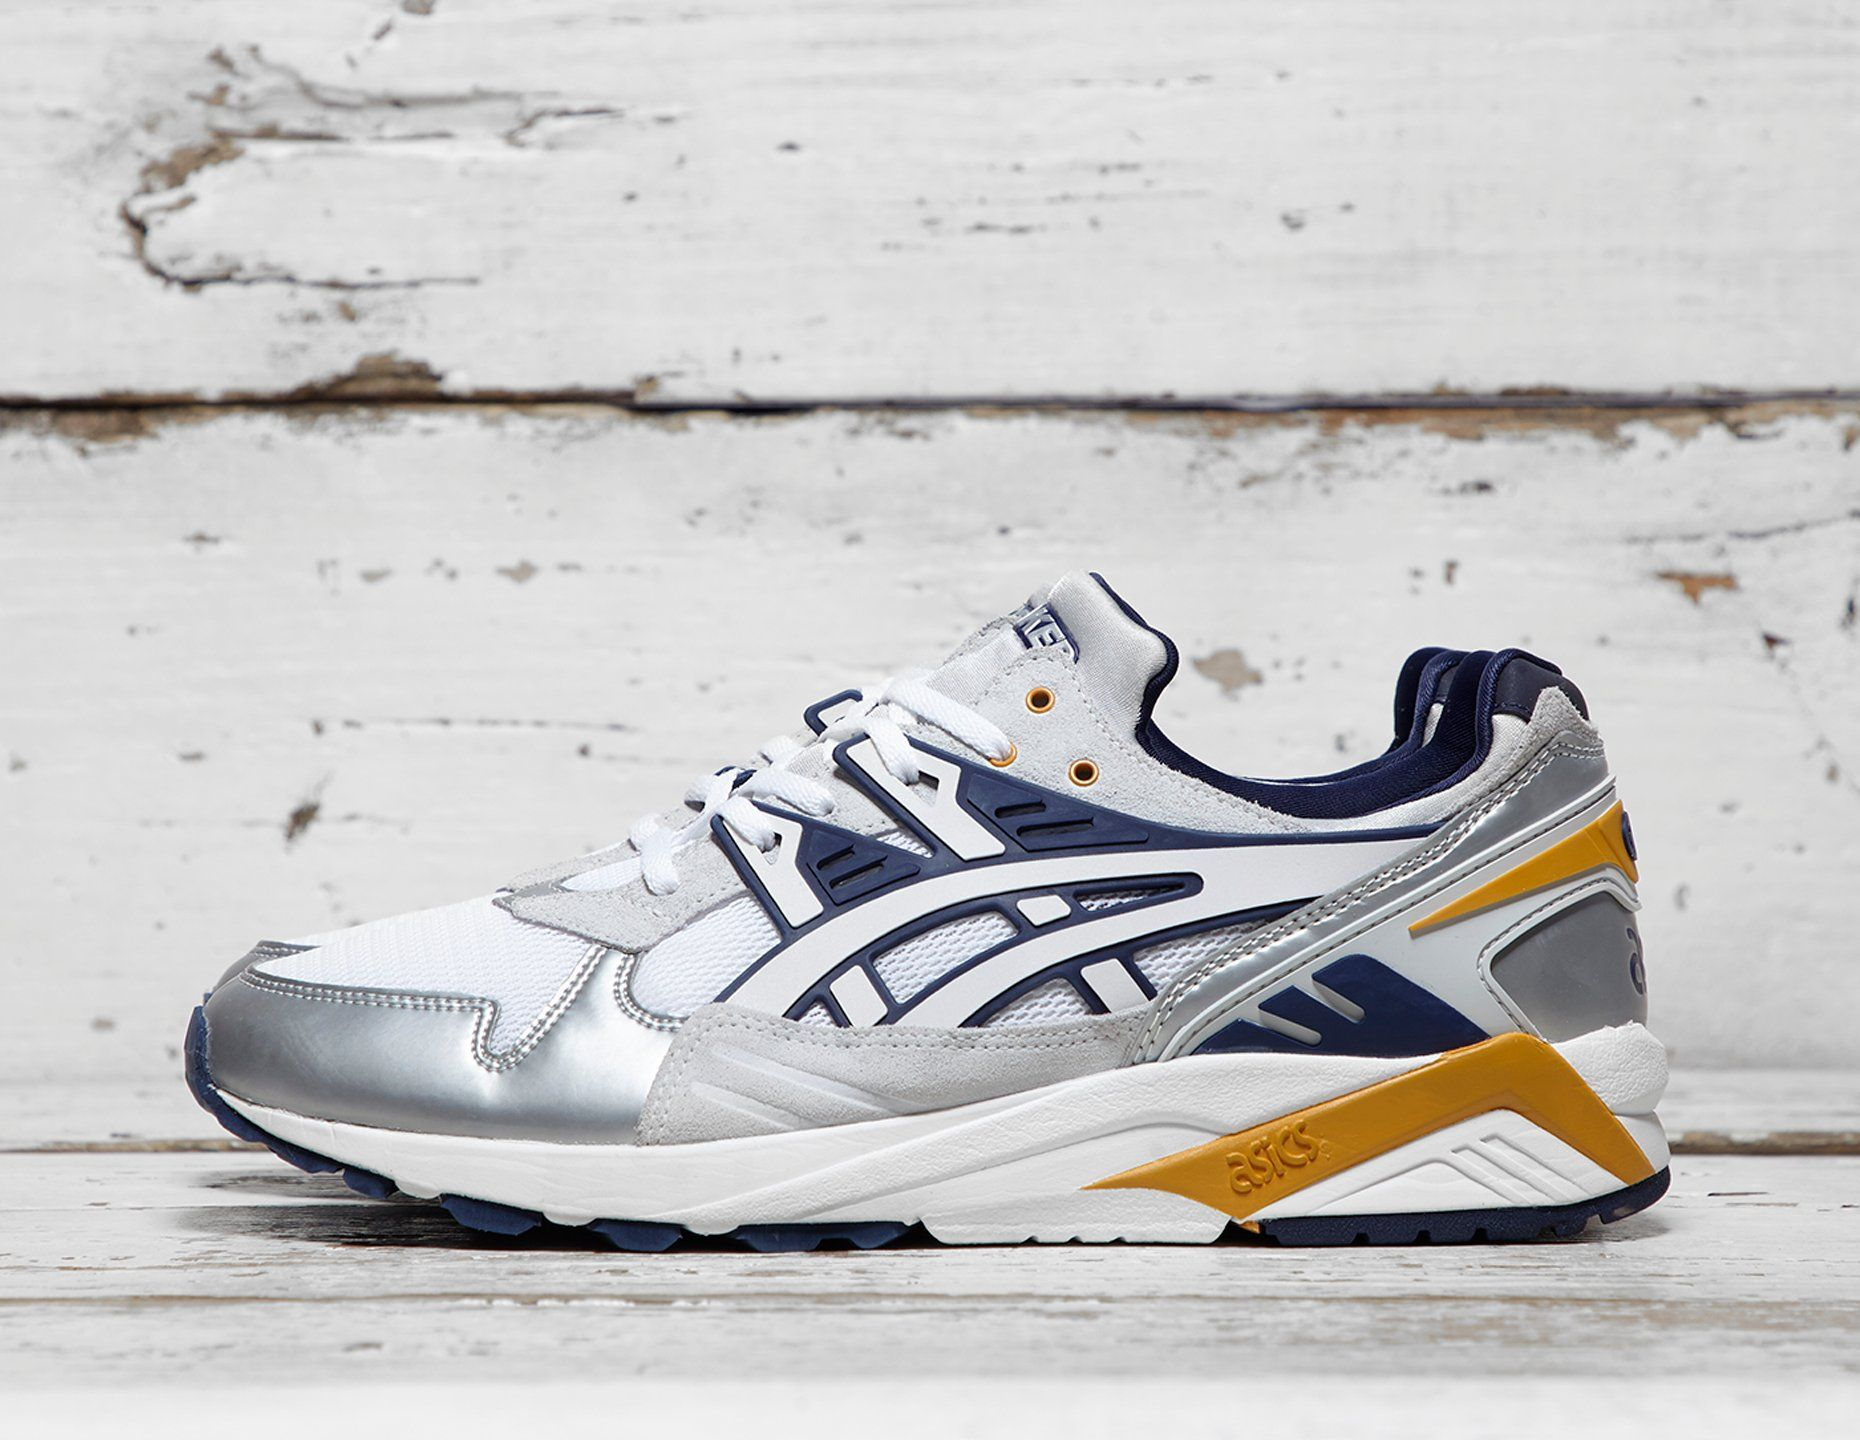 ASICS x Naked Gel Kayano